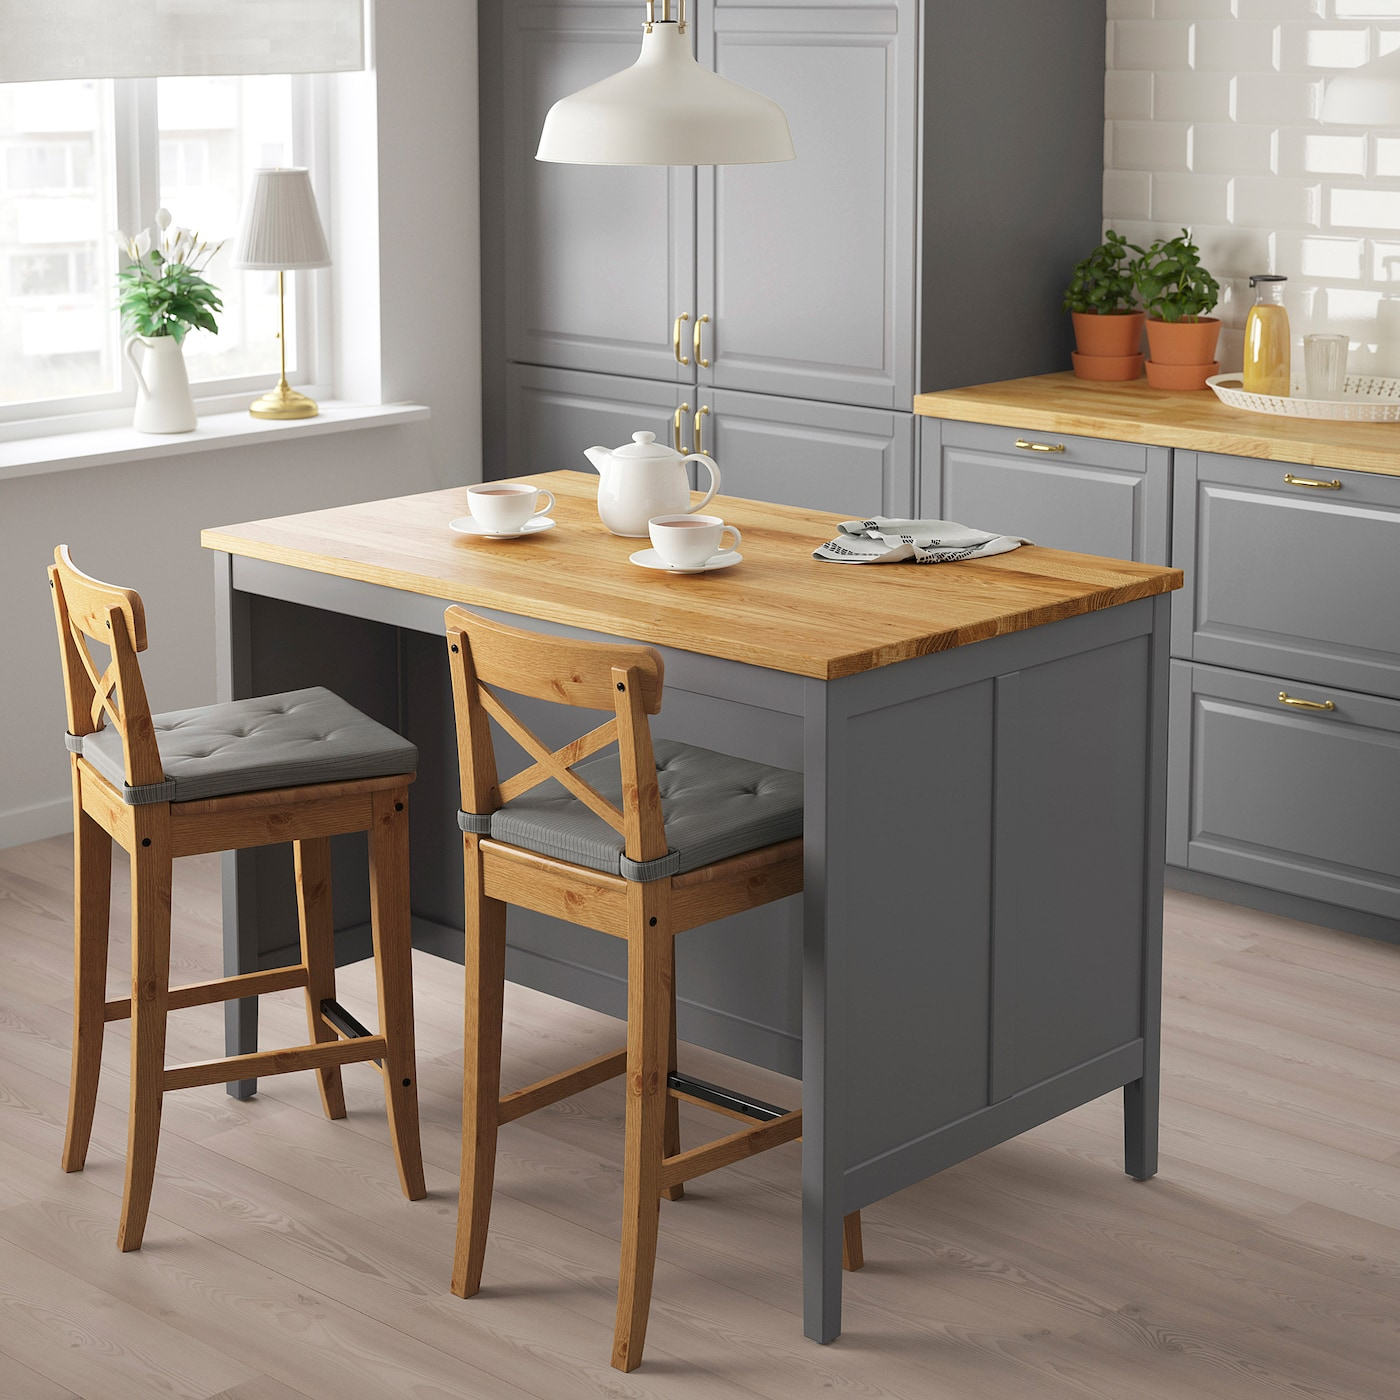 Table Ilot Central Avec Rangement: TORNVIKEN Kitchen Island